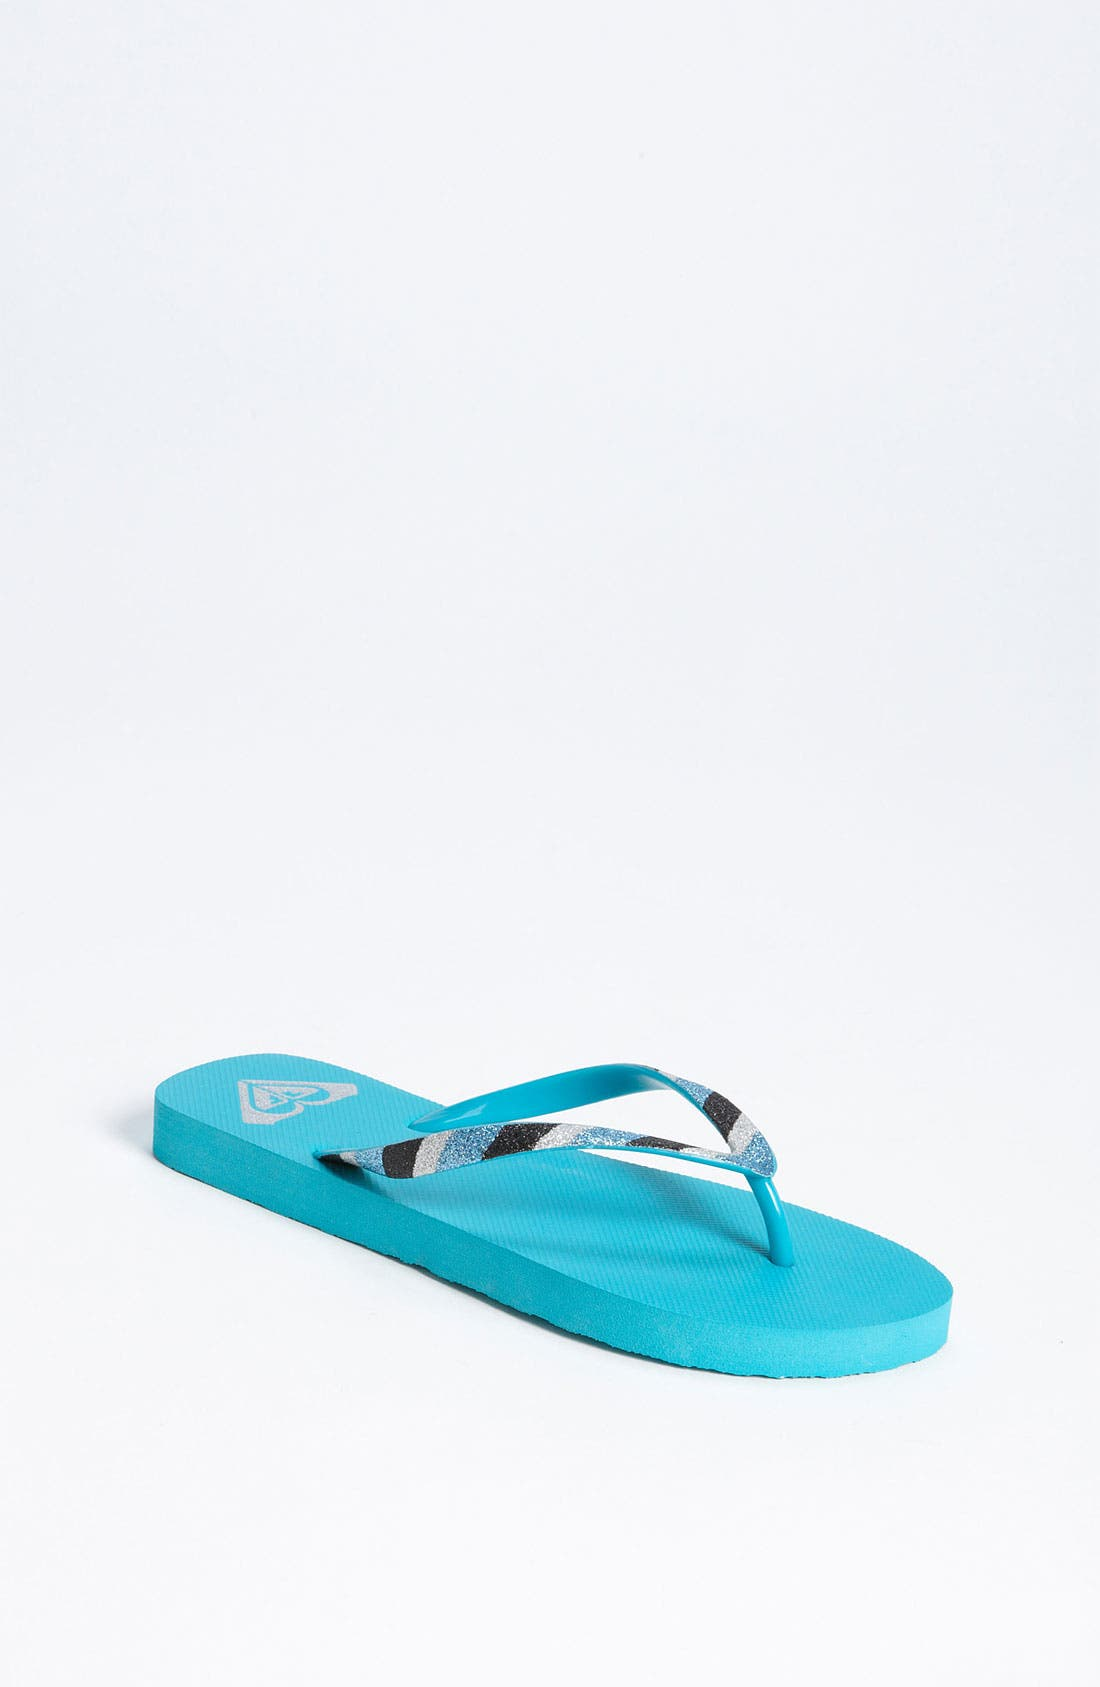 Main Image - Roxy Glitter Flip Flop (Toddler, Little Kid & Big Kid)